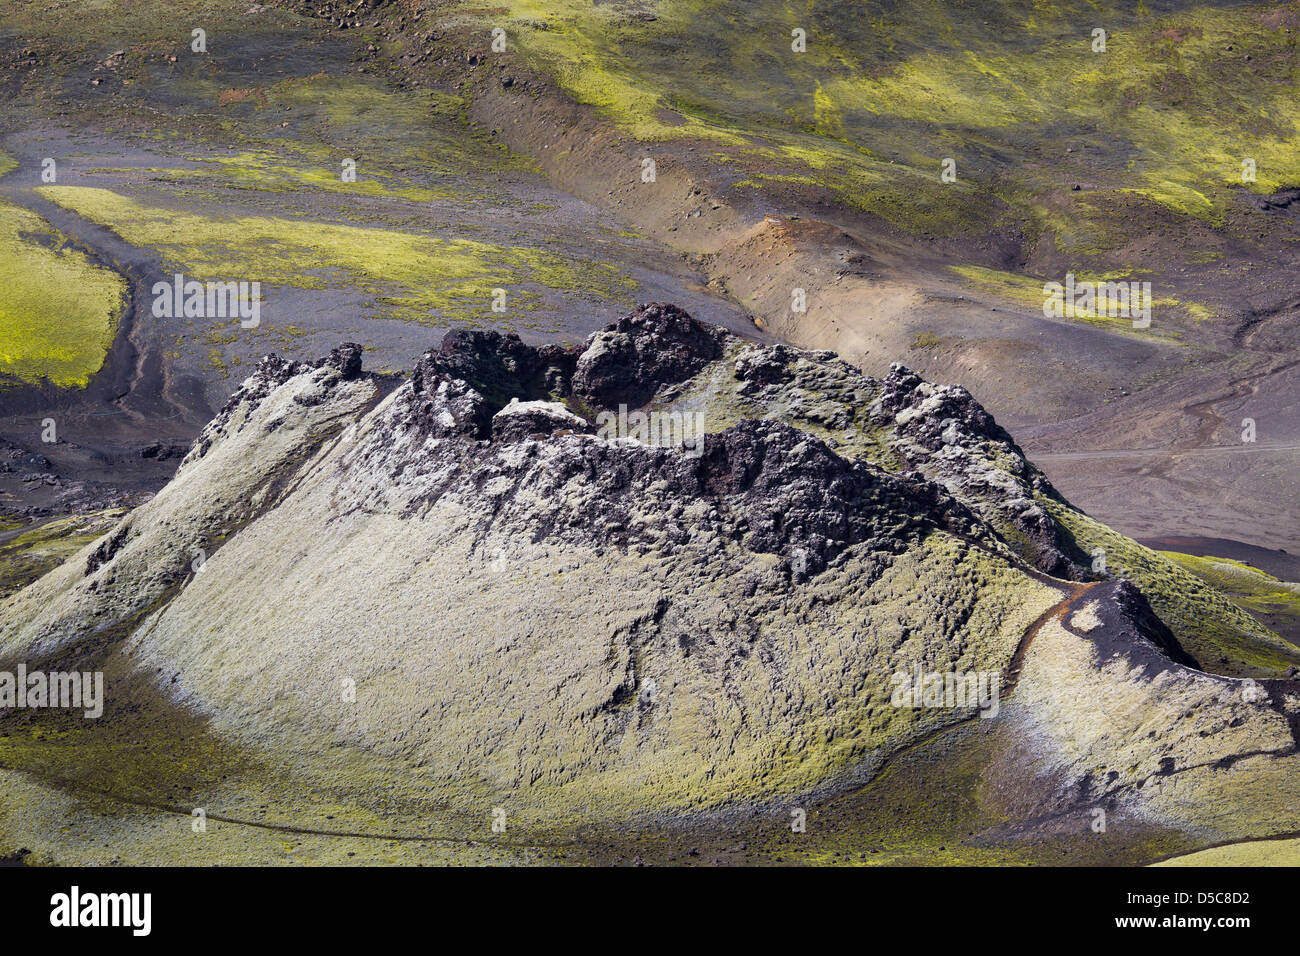 One crater that is part of the caldera at Laki. - Stock Image